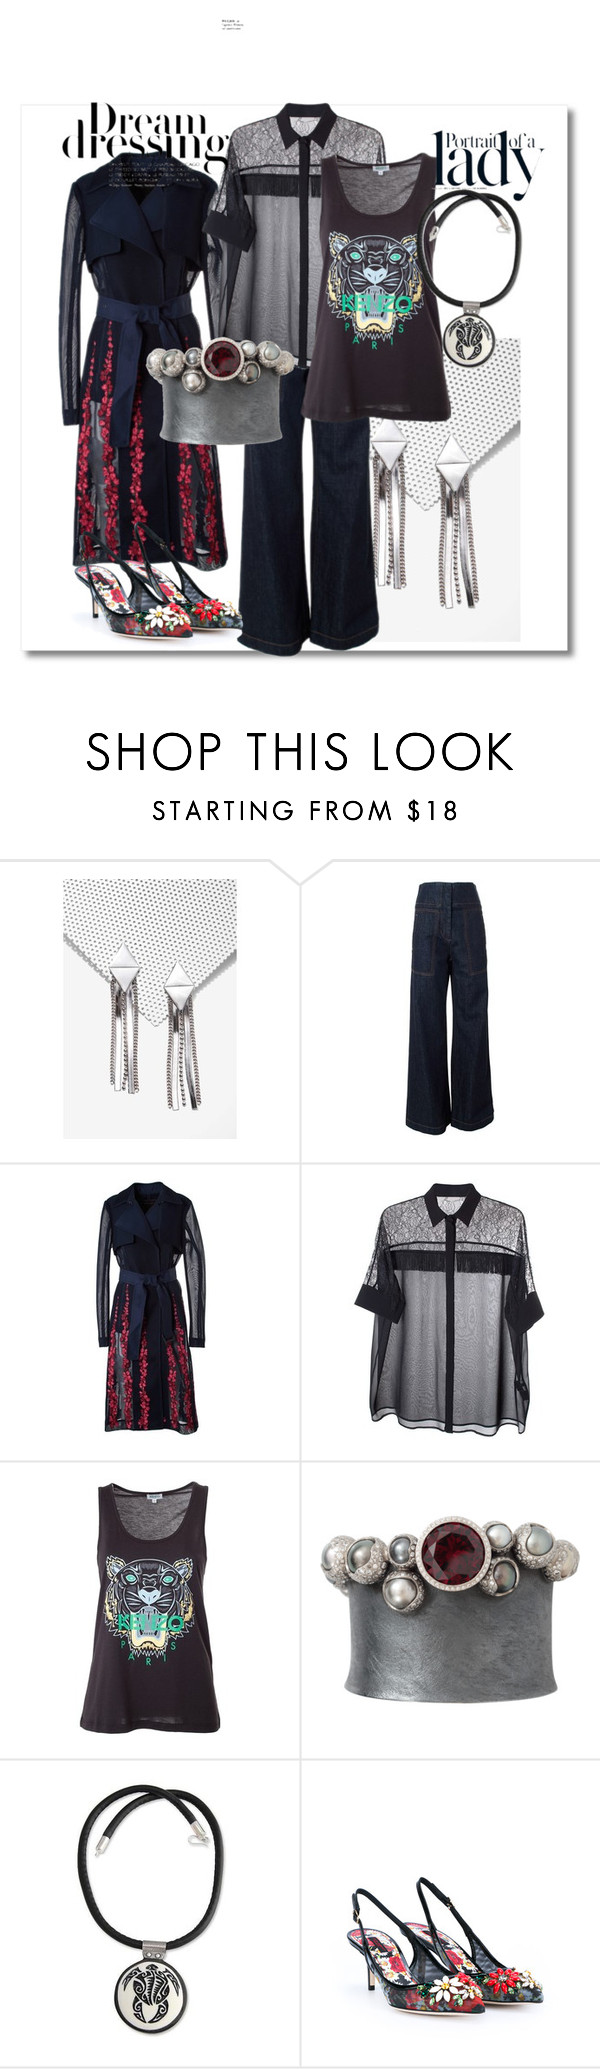 """""""dream dressing"""" by peeweevaaz ❤ liked on Polyvore featuring Marni, BCBGMAXAZRIA, Versace, Kenzo, Todd Reed, NOVICA, Dolce&Gabbana, Inez & Vinoodh, DateNight and partystyle"""